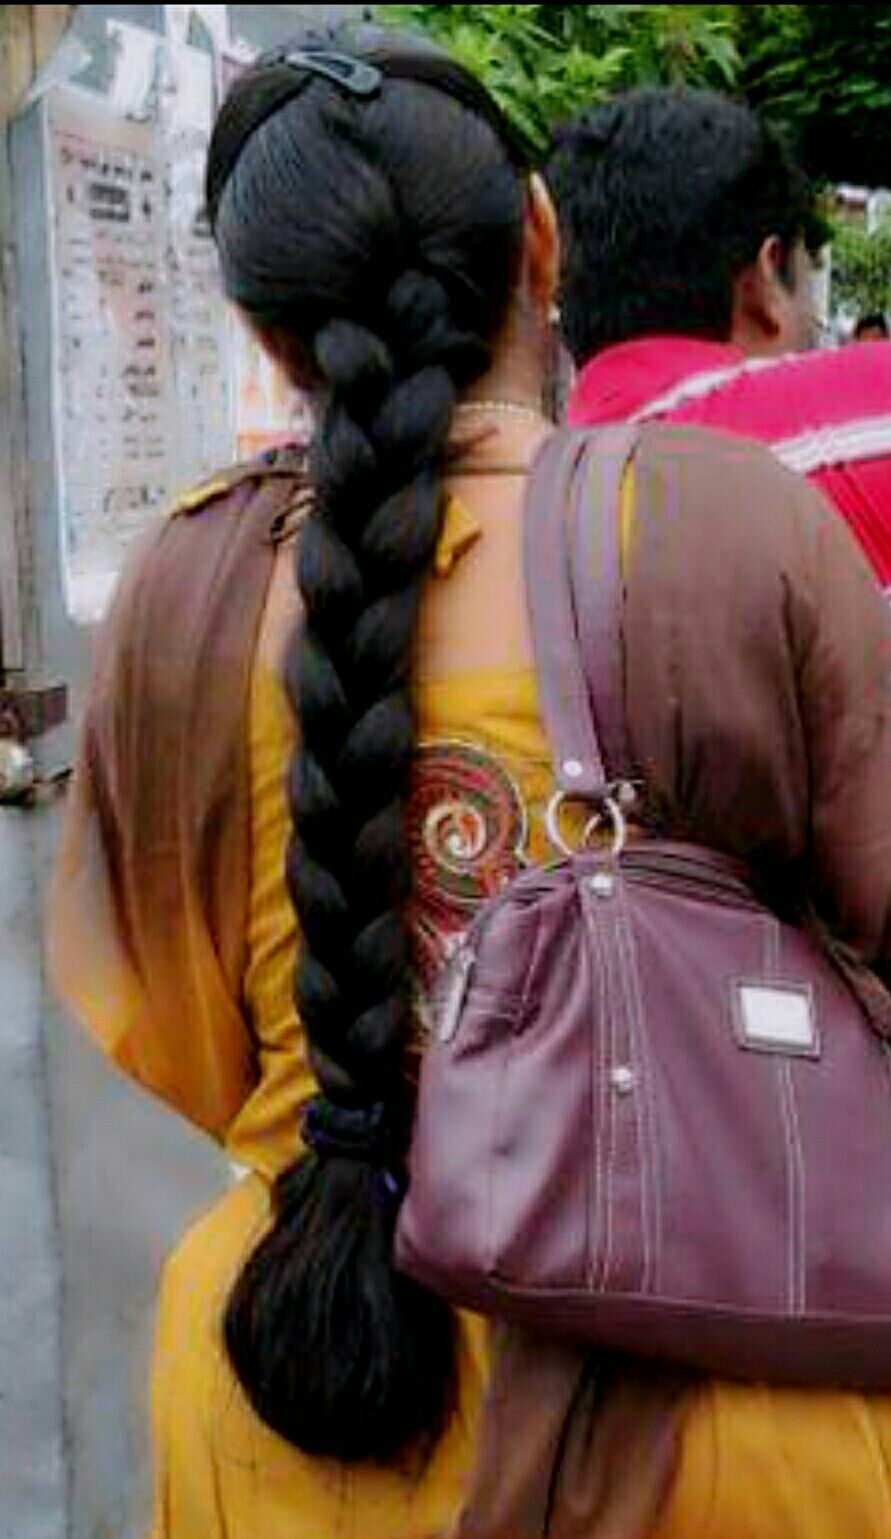 Pin by Preksha Pujara on Thick long hair braids   Pinterest   Hair     Thick Braid  Thick Long Hair  Long Hair Styles  Cute Hair  Ponytail   Beautiful Braids  Hair And Beauty  Longer Hair  Bollywood